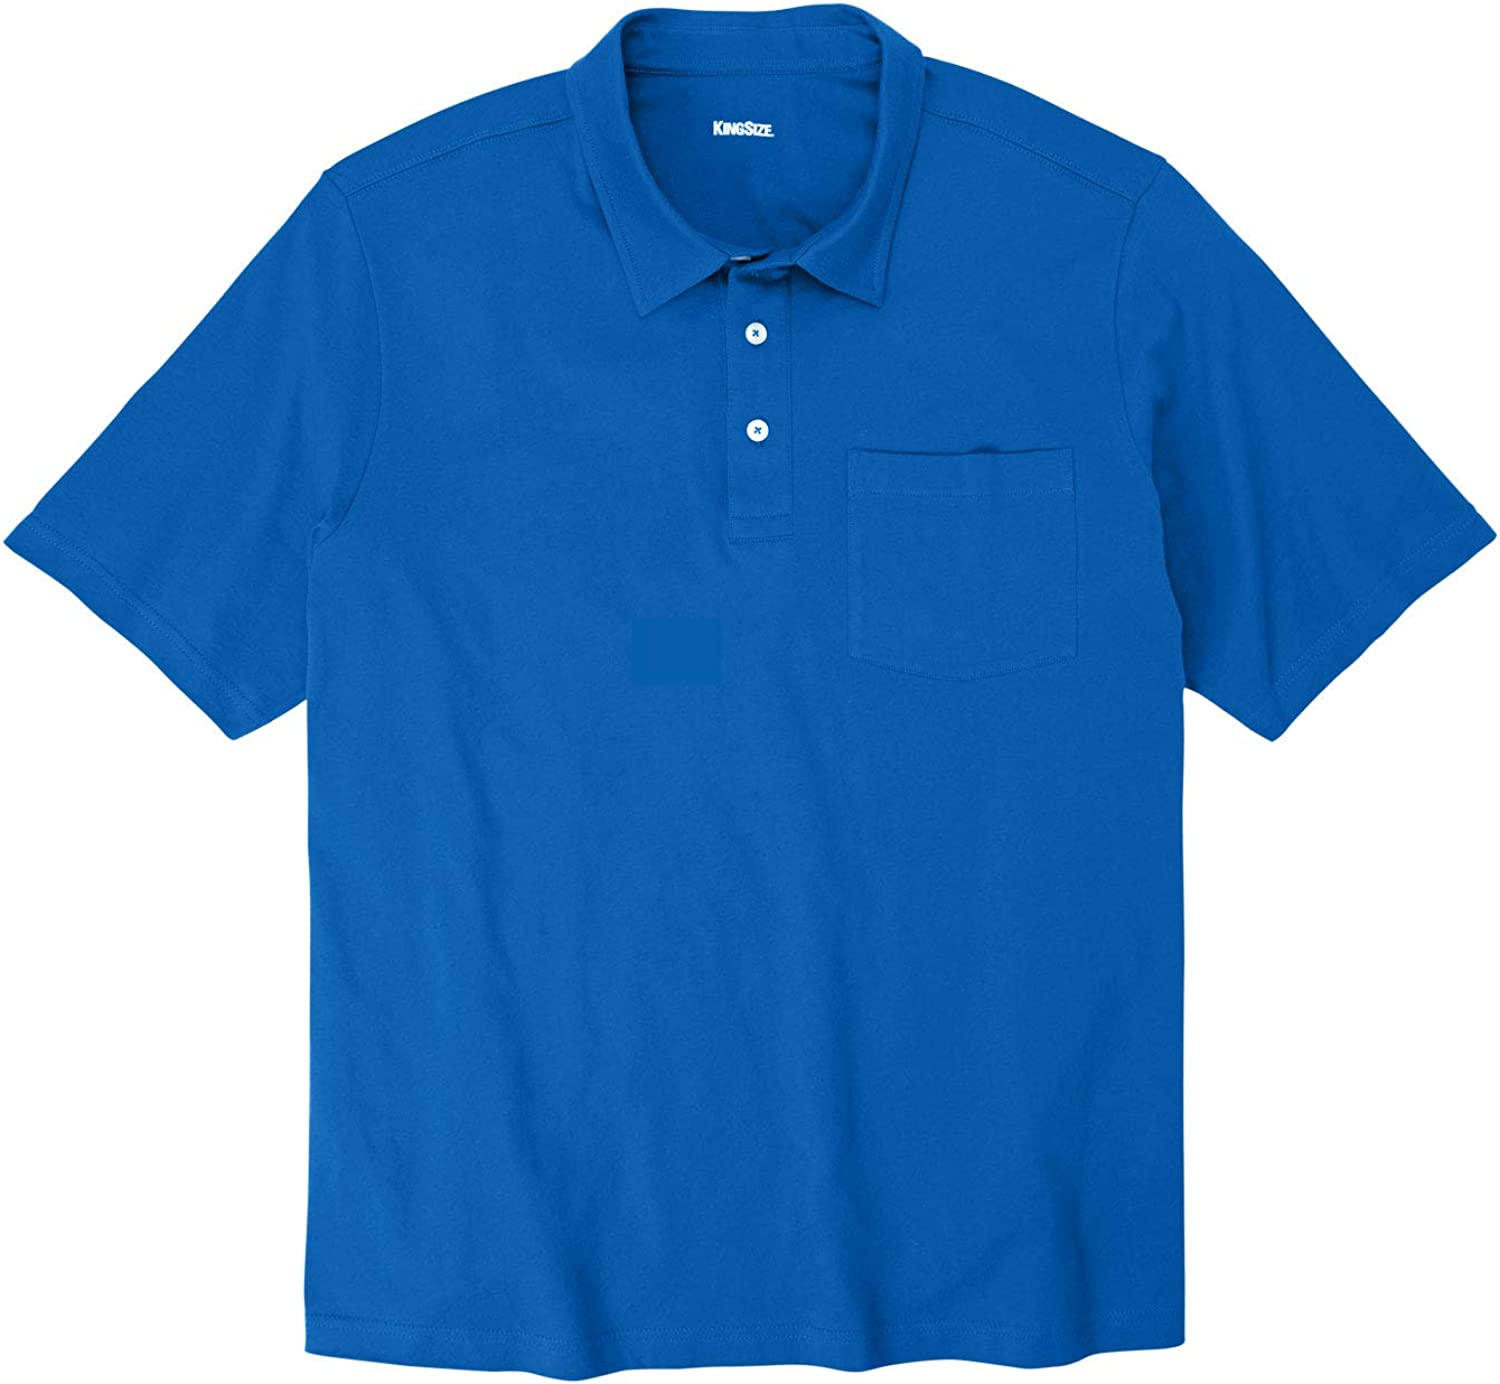 Max 53% OFF KingSize Beauty products Men's Big Tall Lightweight Polo Shrink-Less T-Shirt